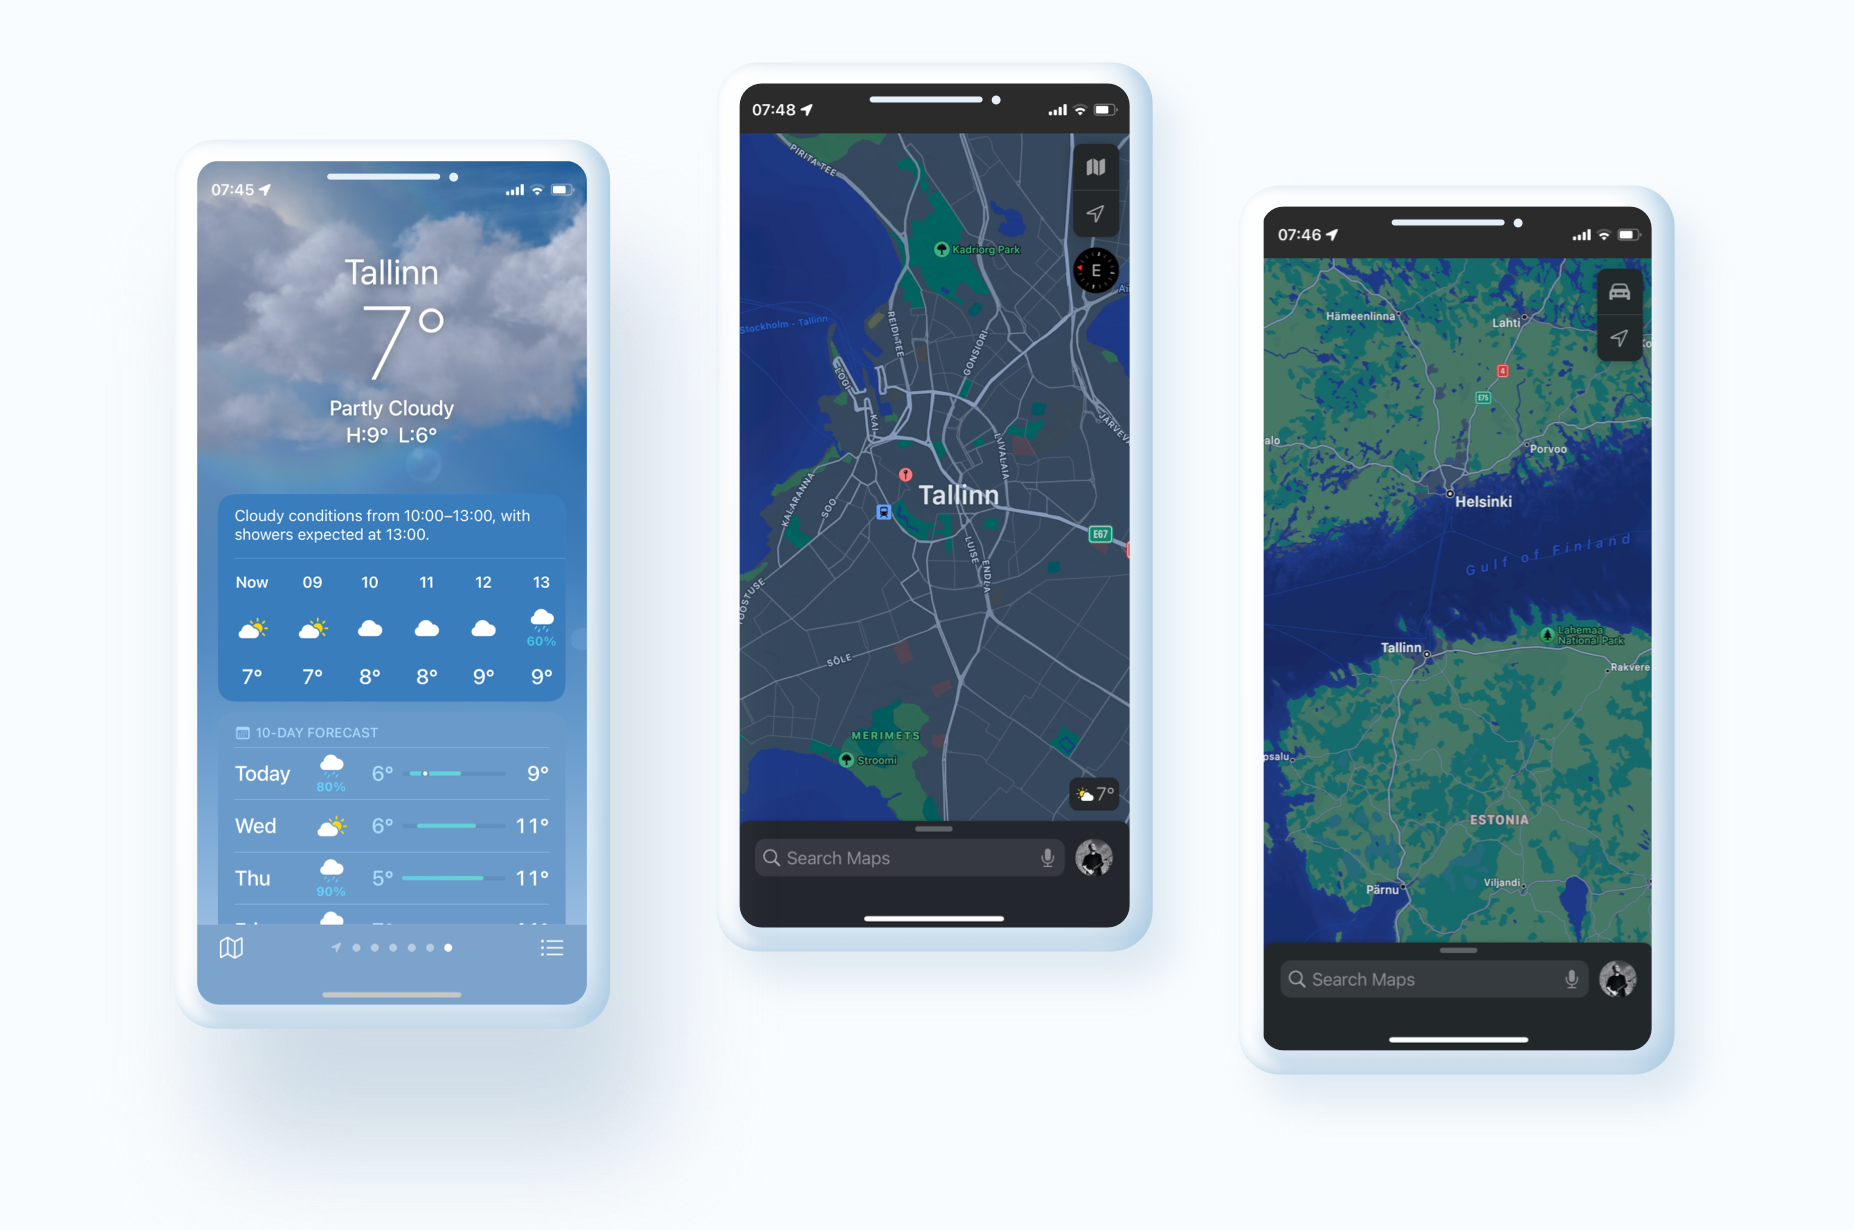 iOS 15 the Maps and Weather apps got updated visually